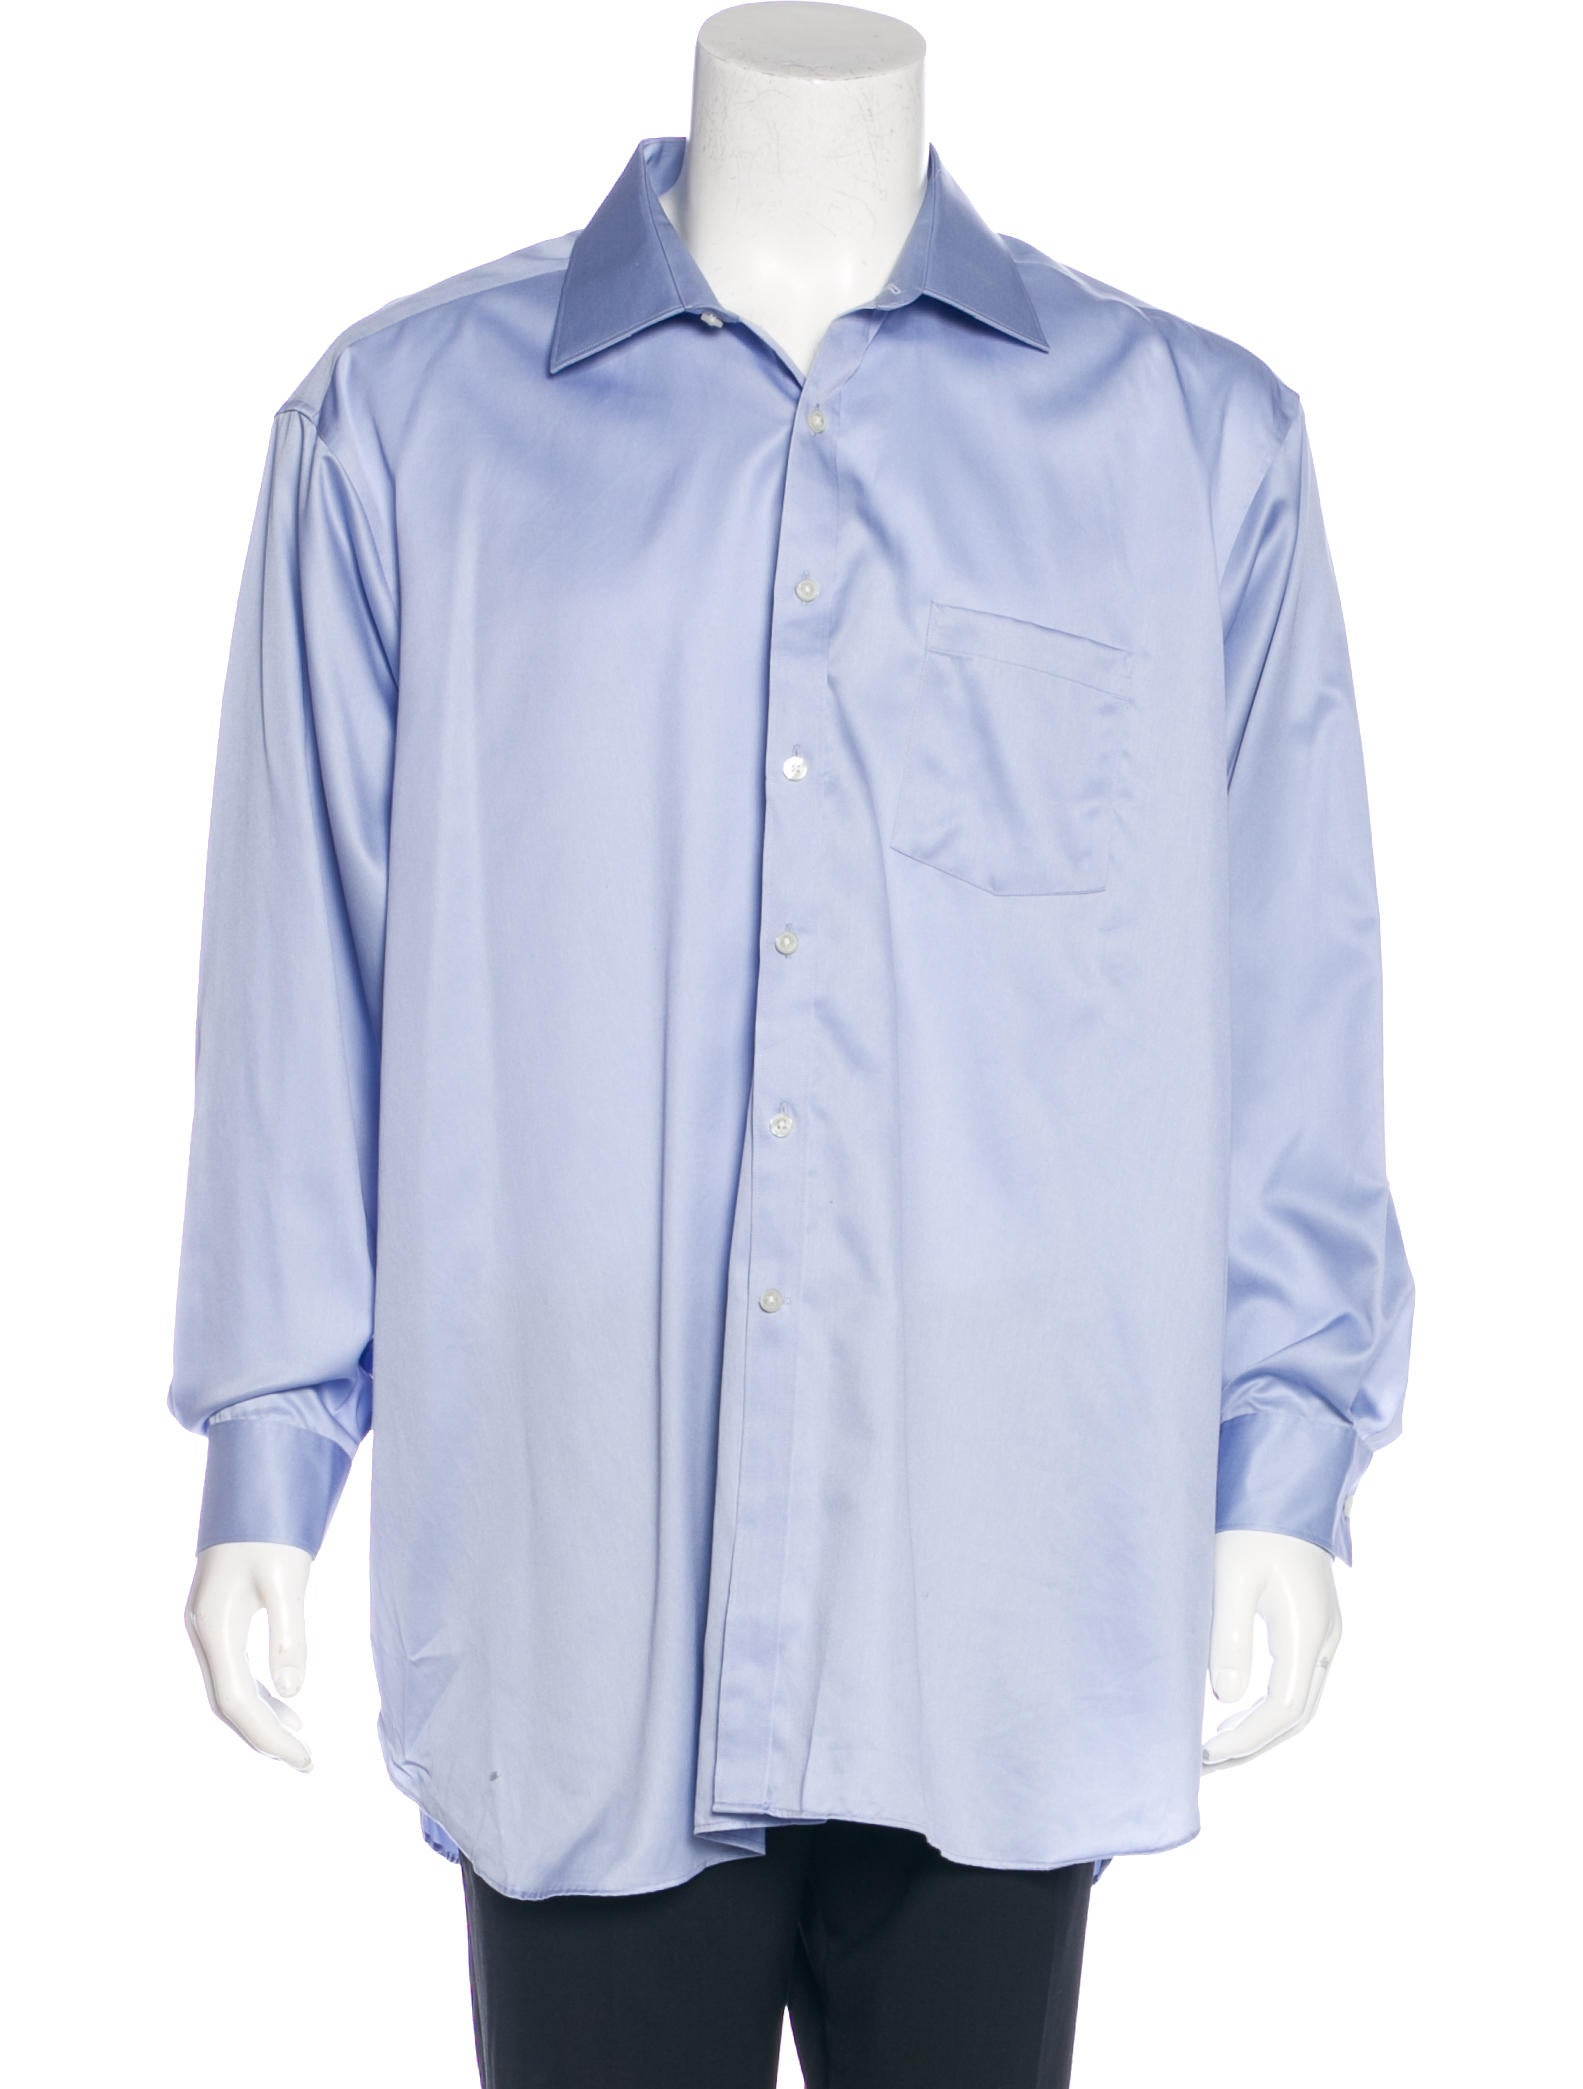 michael kors non iron dress shirt clothing mic54443